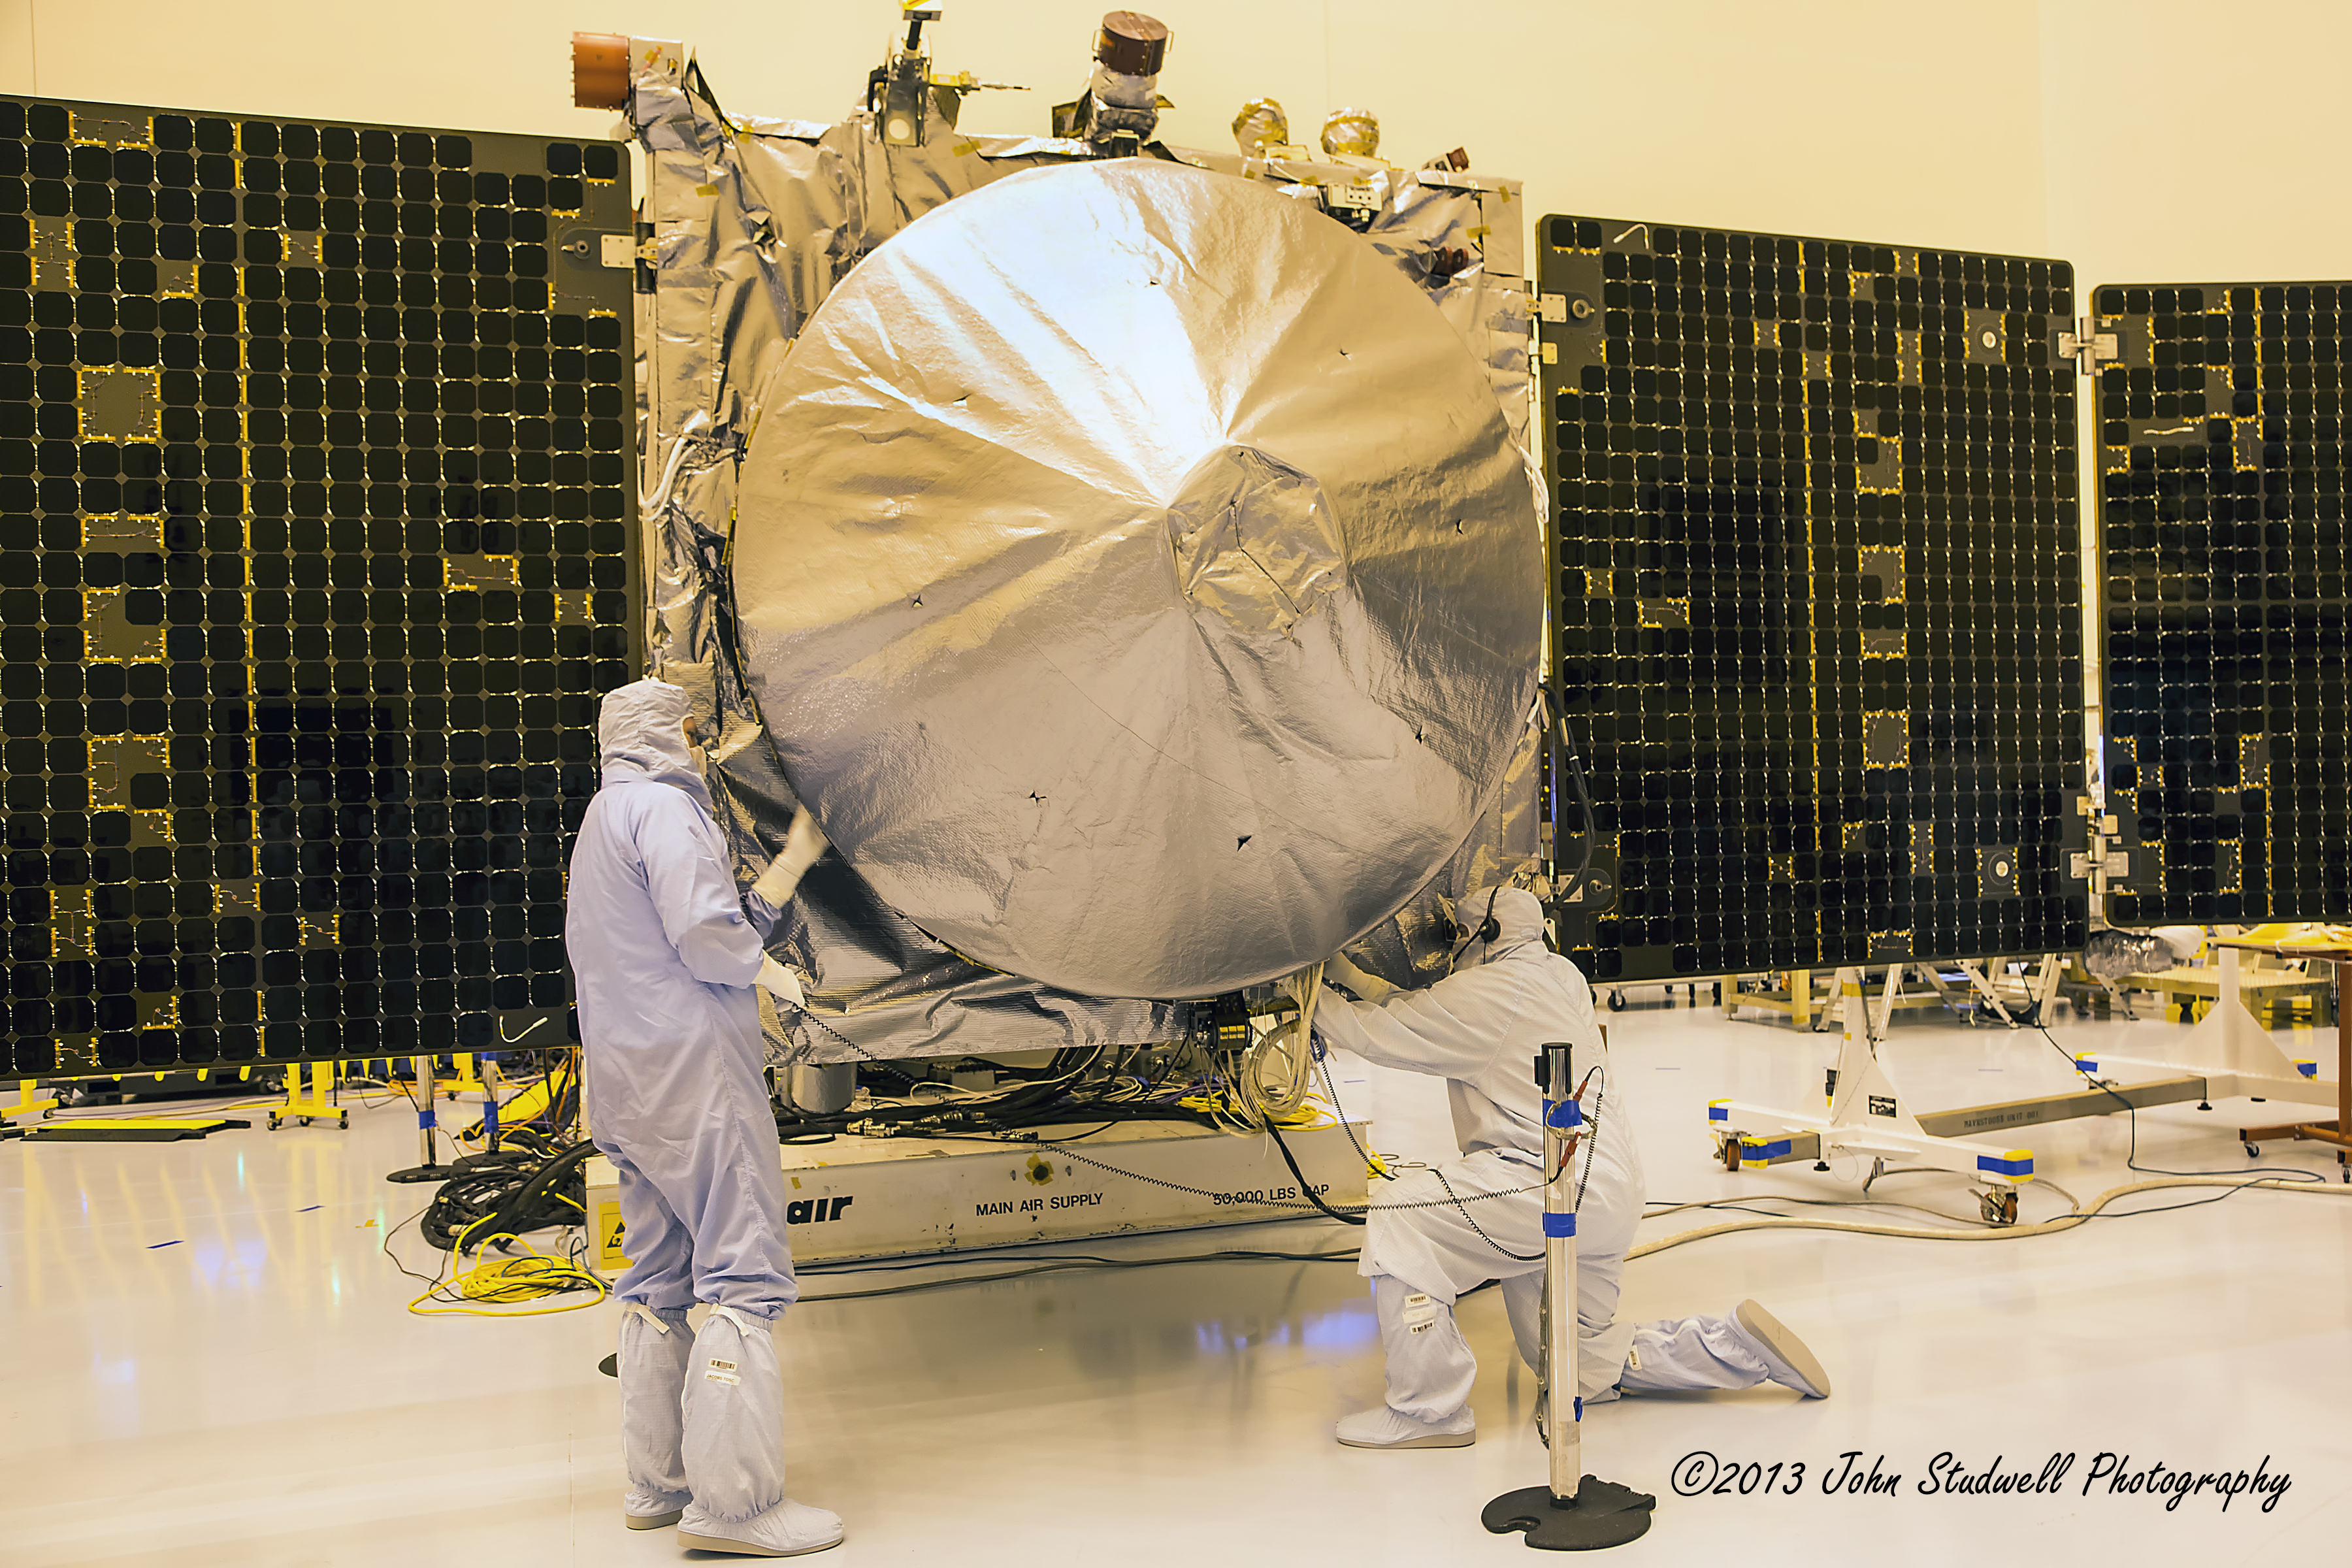 NASA's MAVEN spacecraft is ready for its Nov. 18 launch date. Photo Credit: John Studwell / The SpaceFlight Group